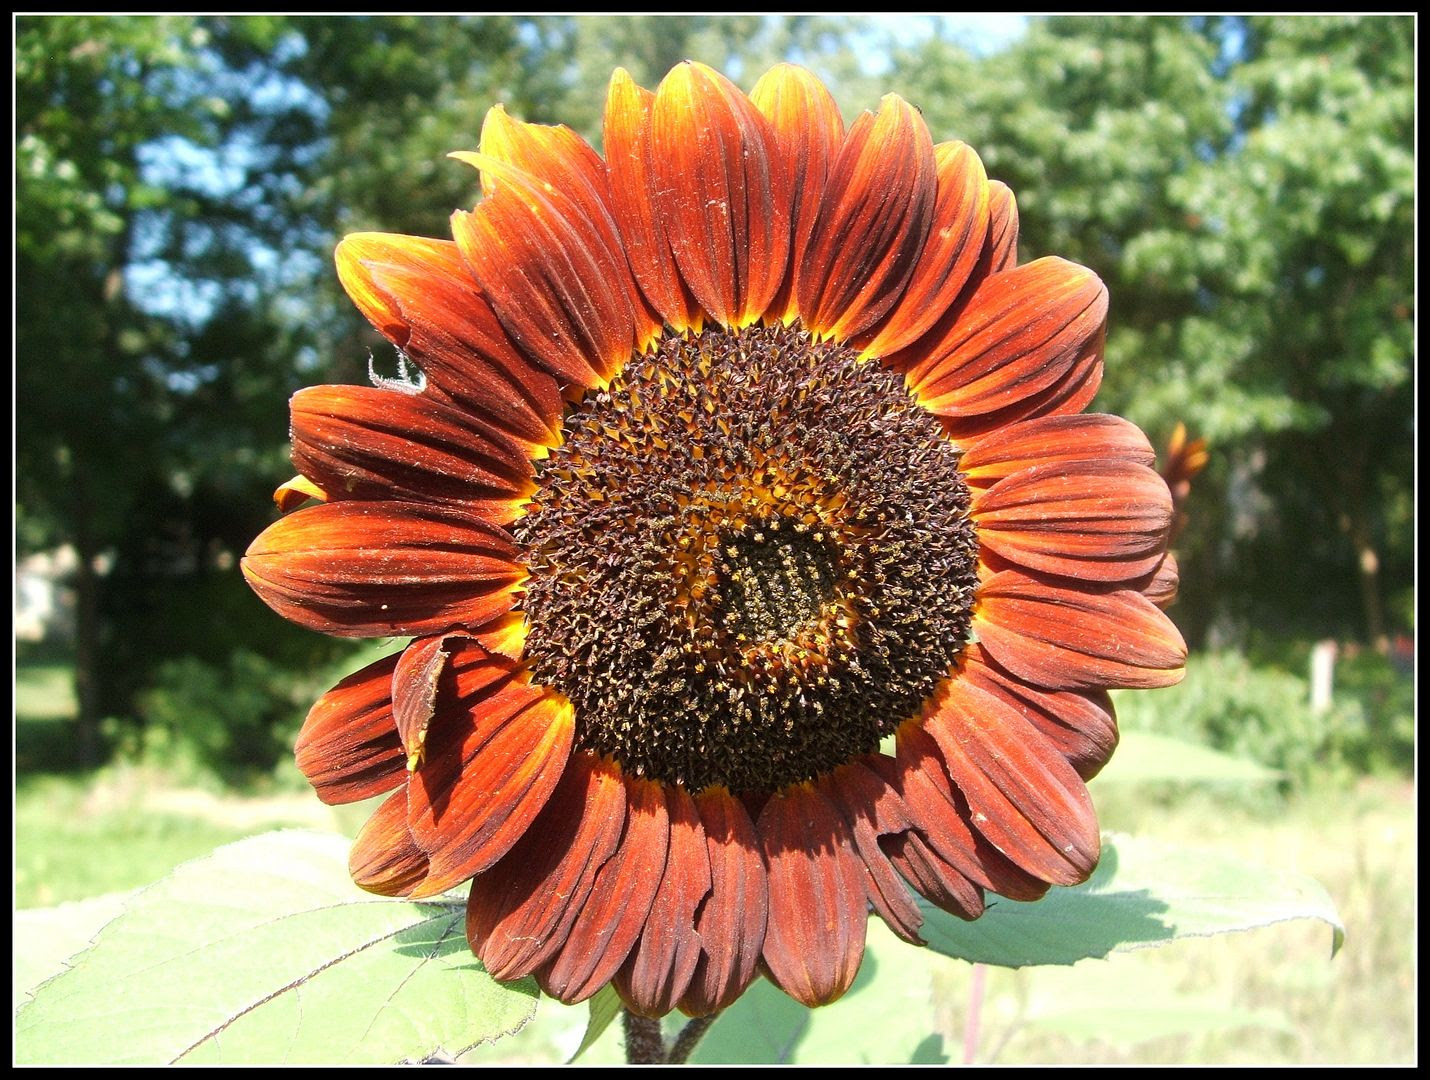 Prado Sunflowers by Angie Ouellette-Tower for godsgrowinggarden.com photo 007_zpsaa27b899.jpg